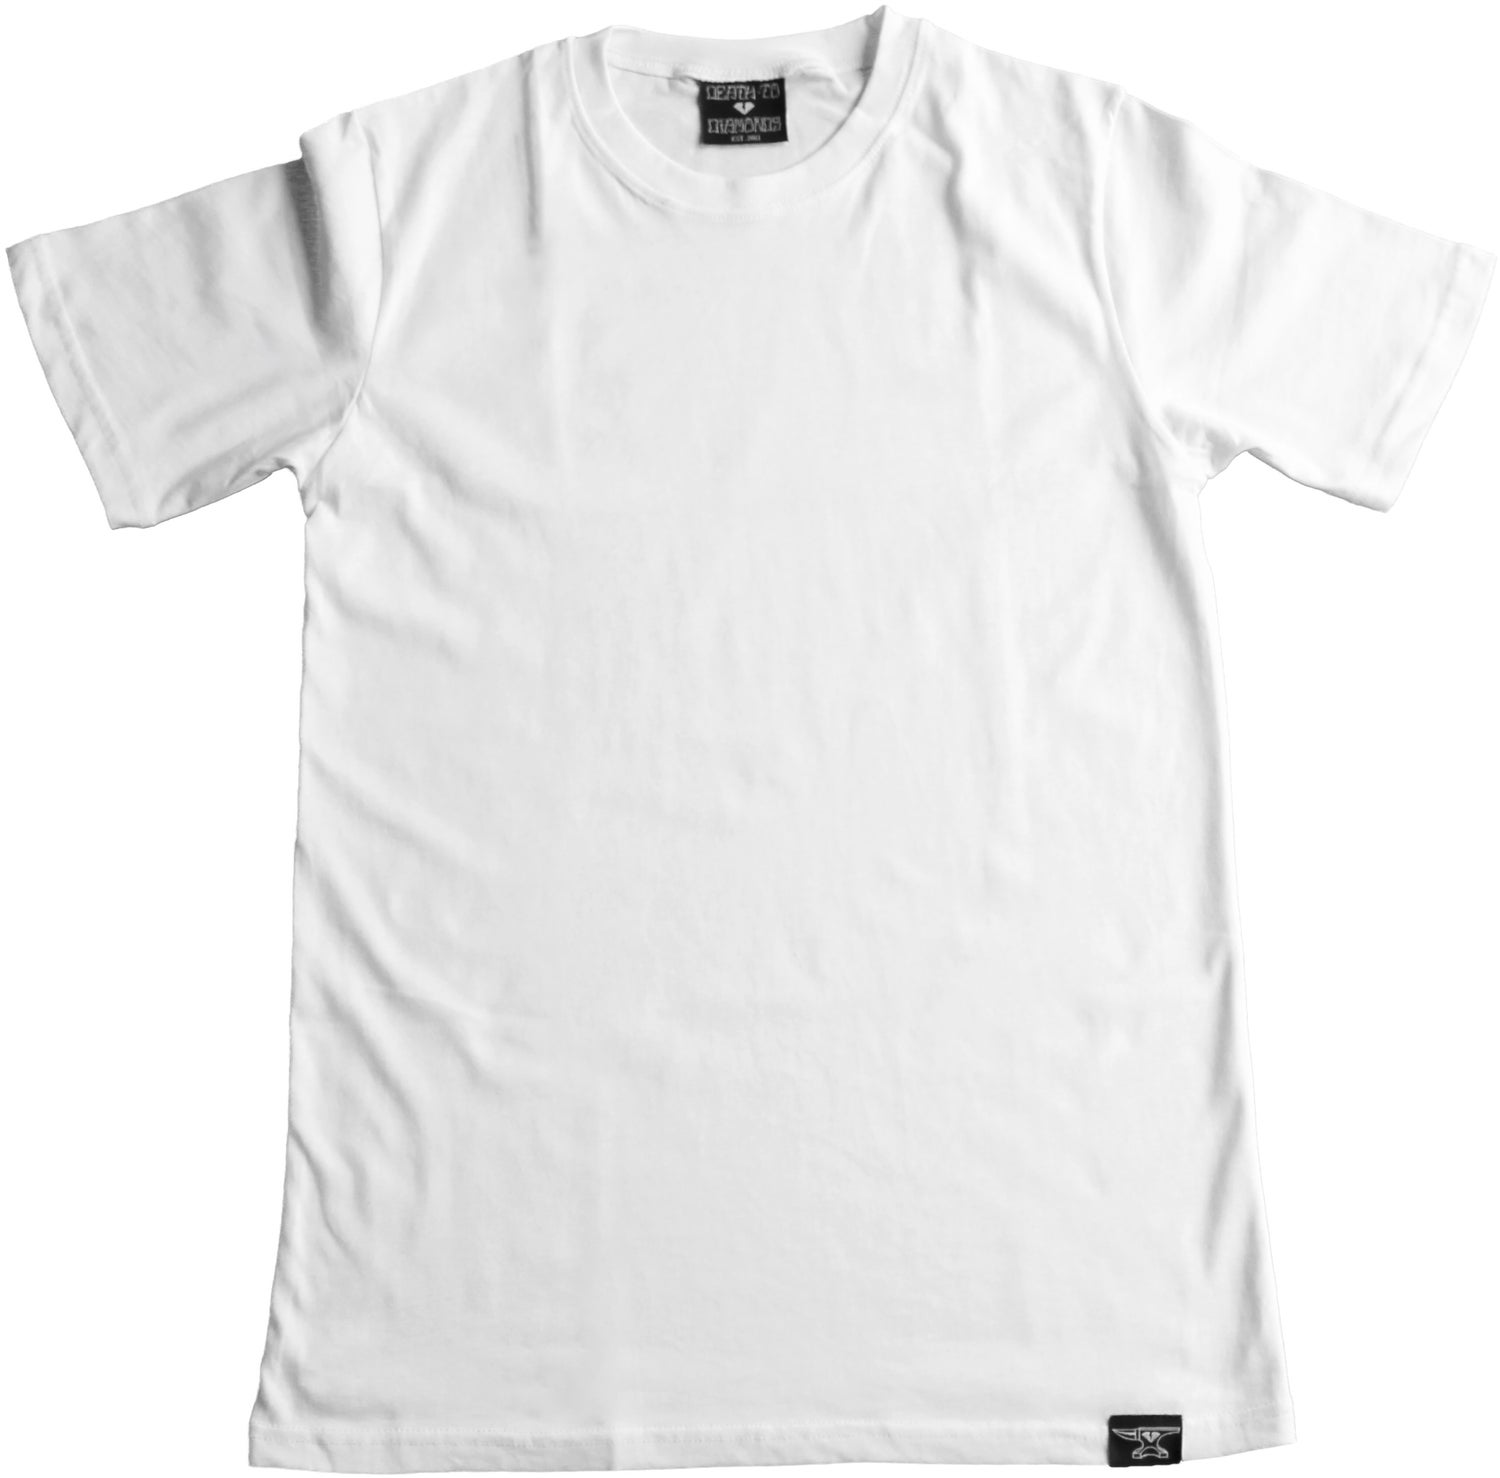 Image of Custom Blank White T-Shirt